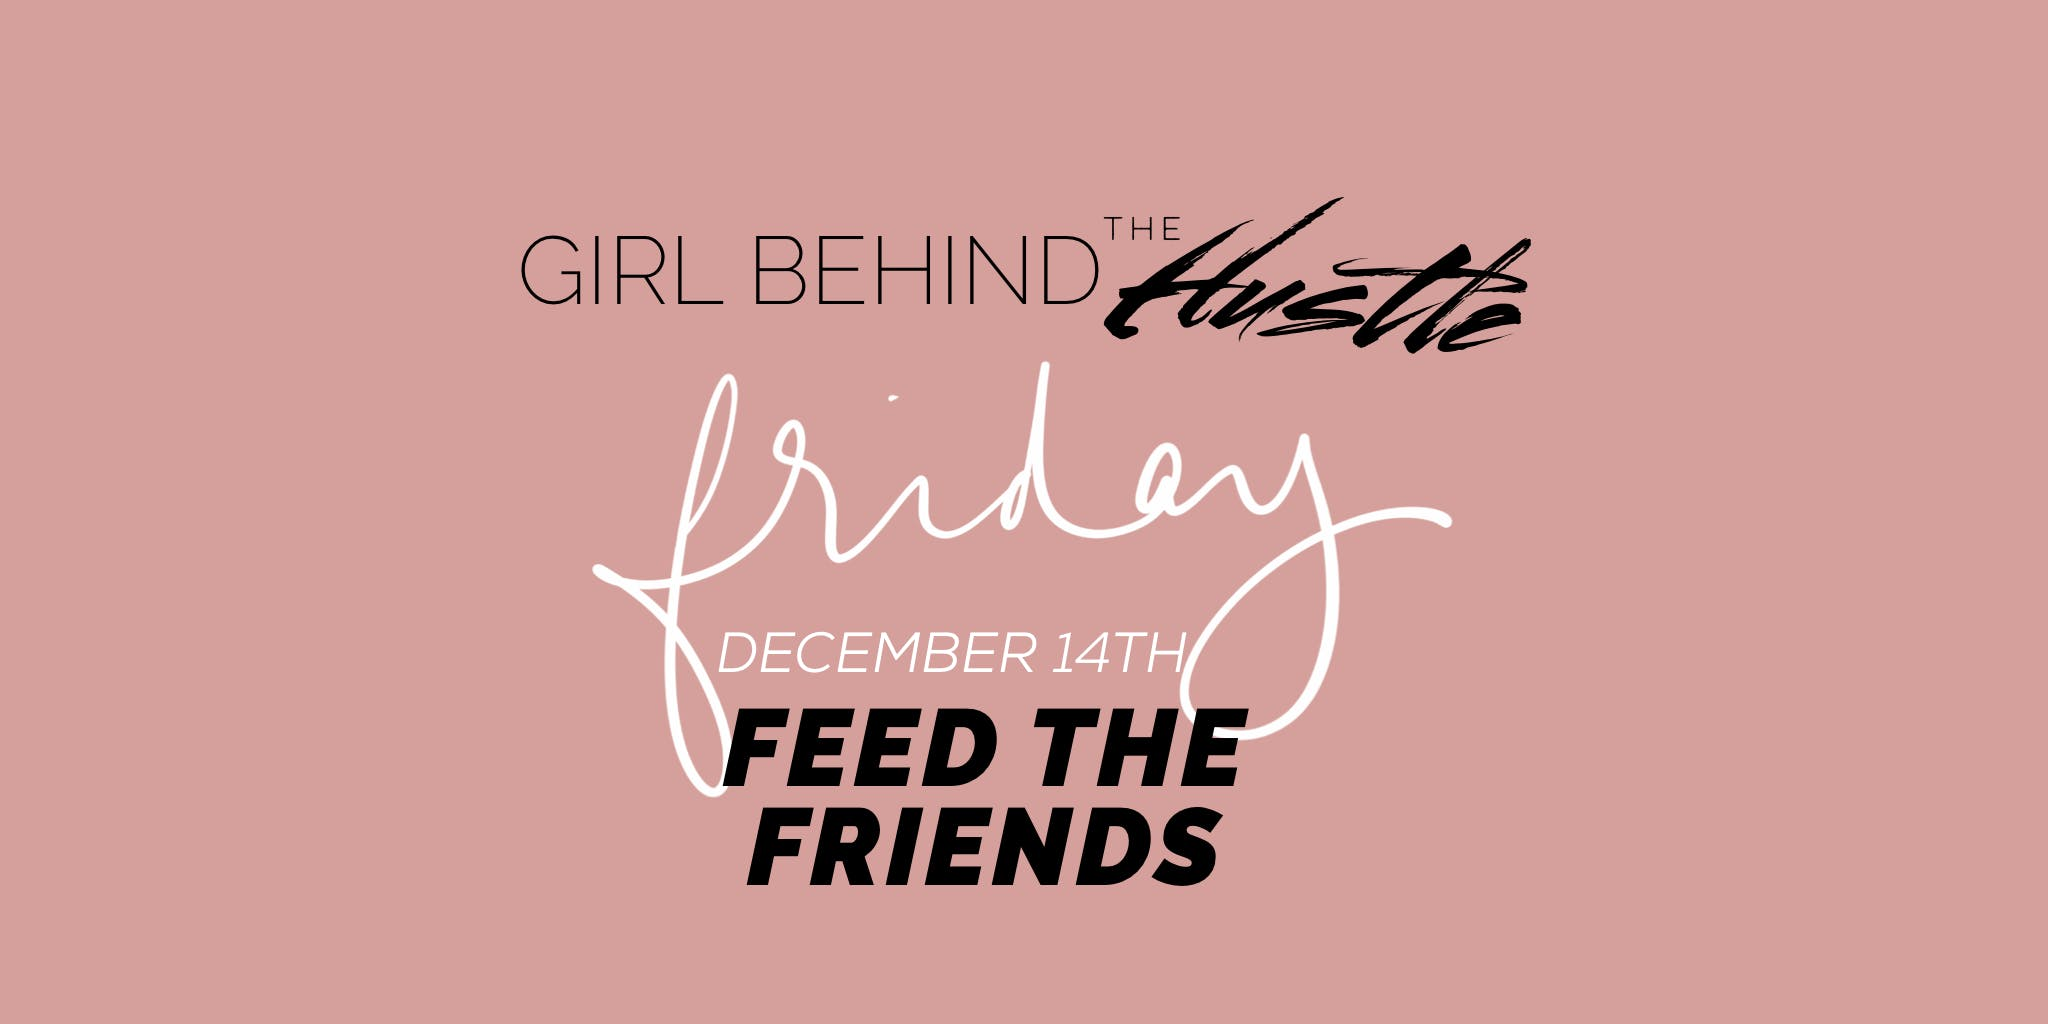 Girl Behind The Hustle: Feed The Friends